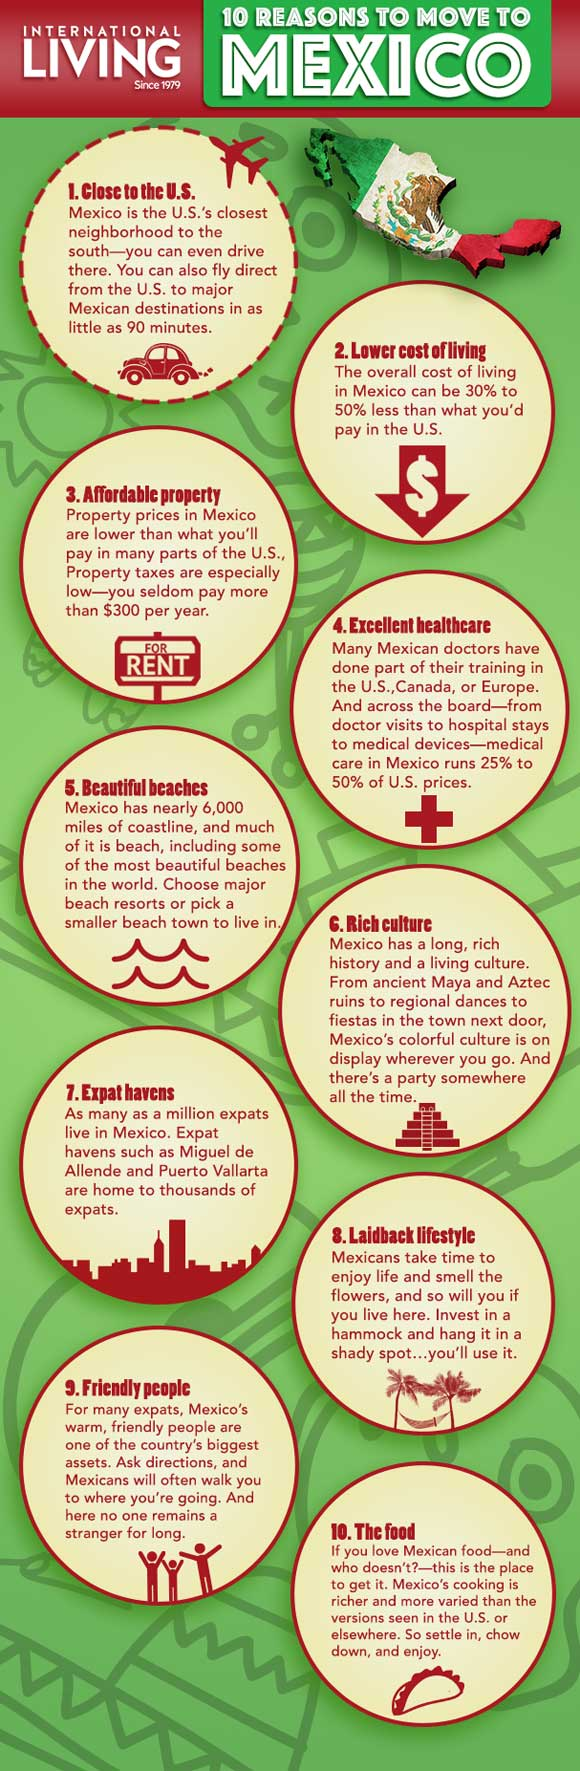 reasons to move to mexico infographic